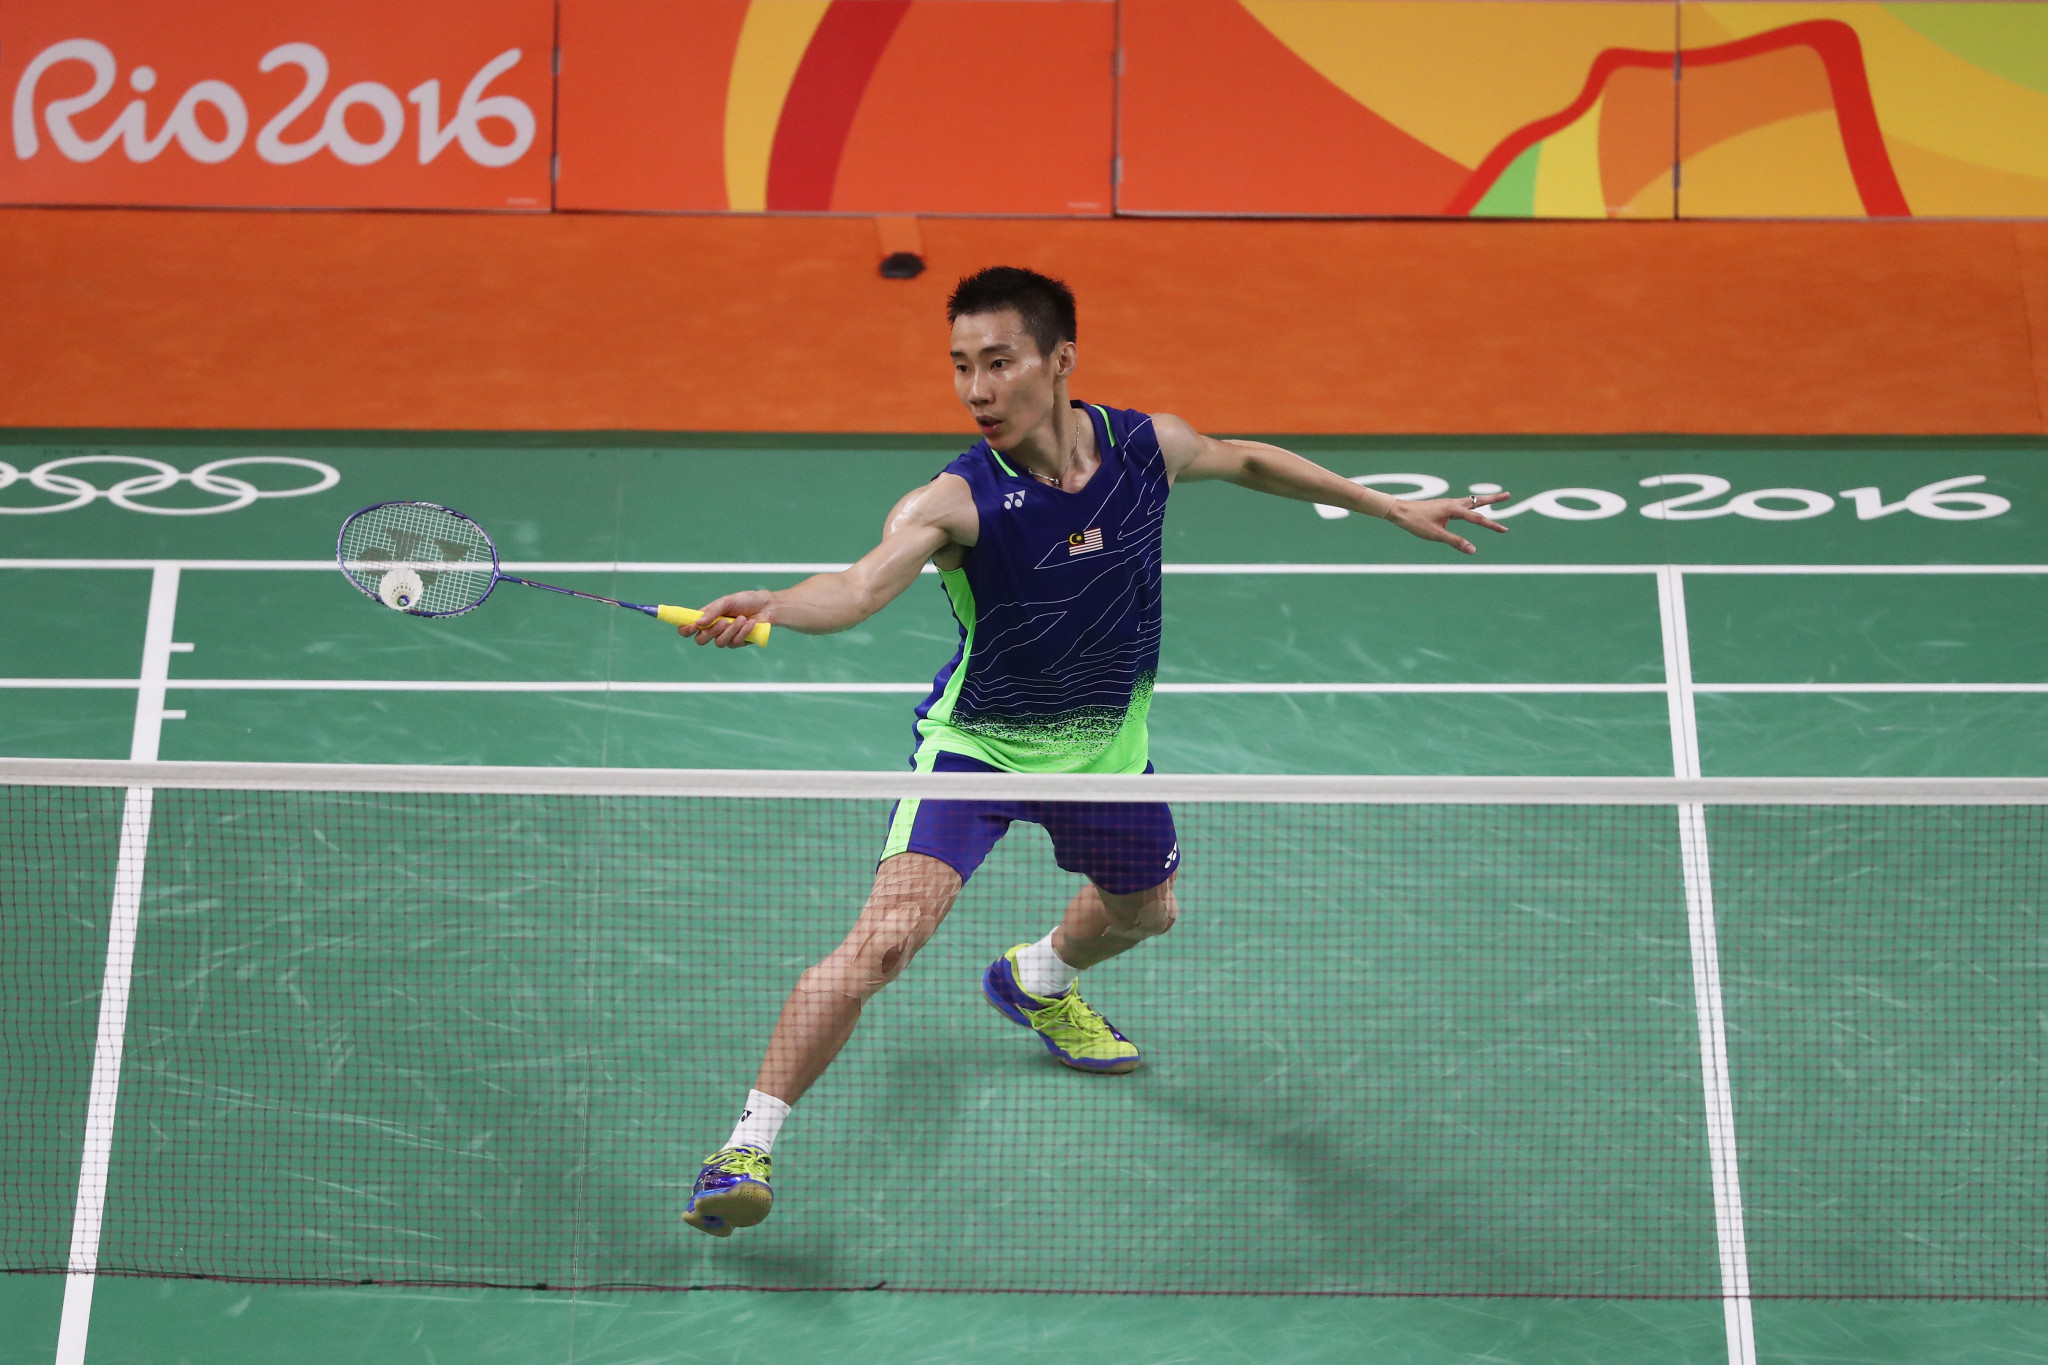 Lee Chong Wei competed at four Olympic Games, earning three silver medals ©Getty Images